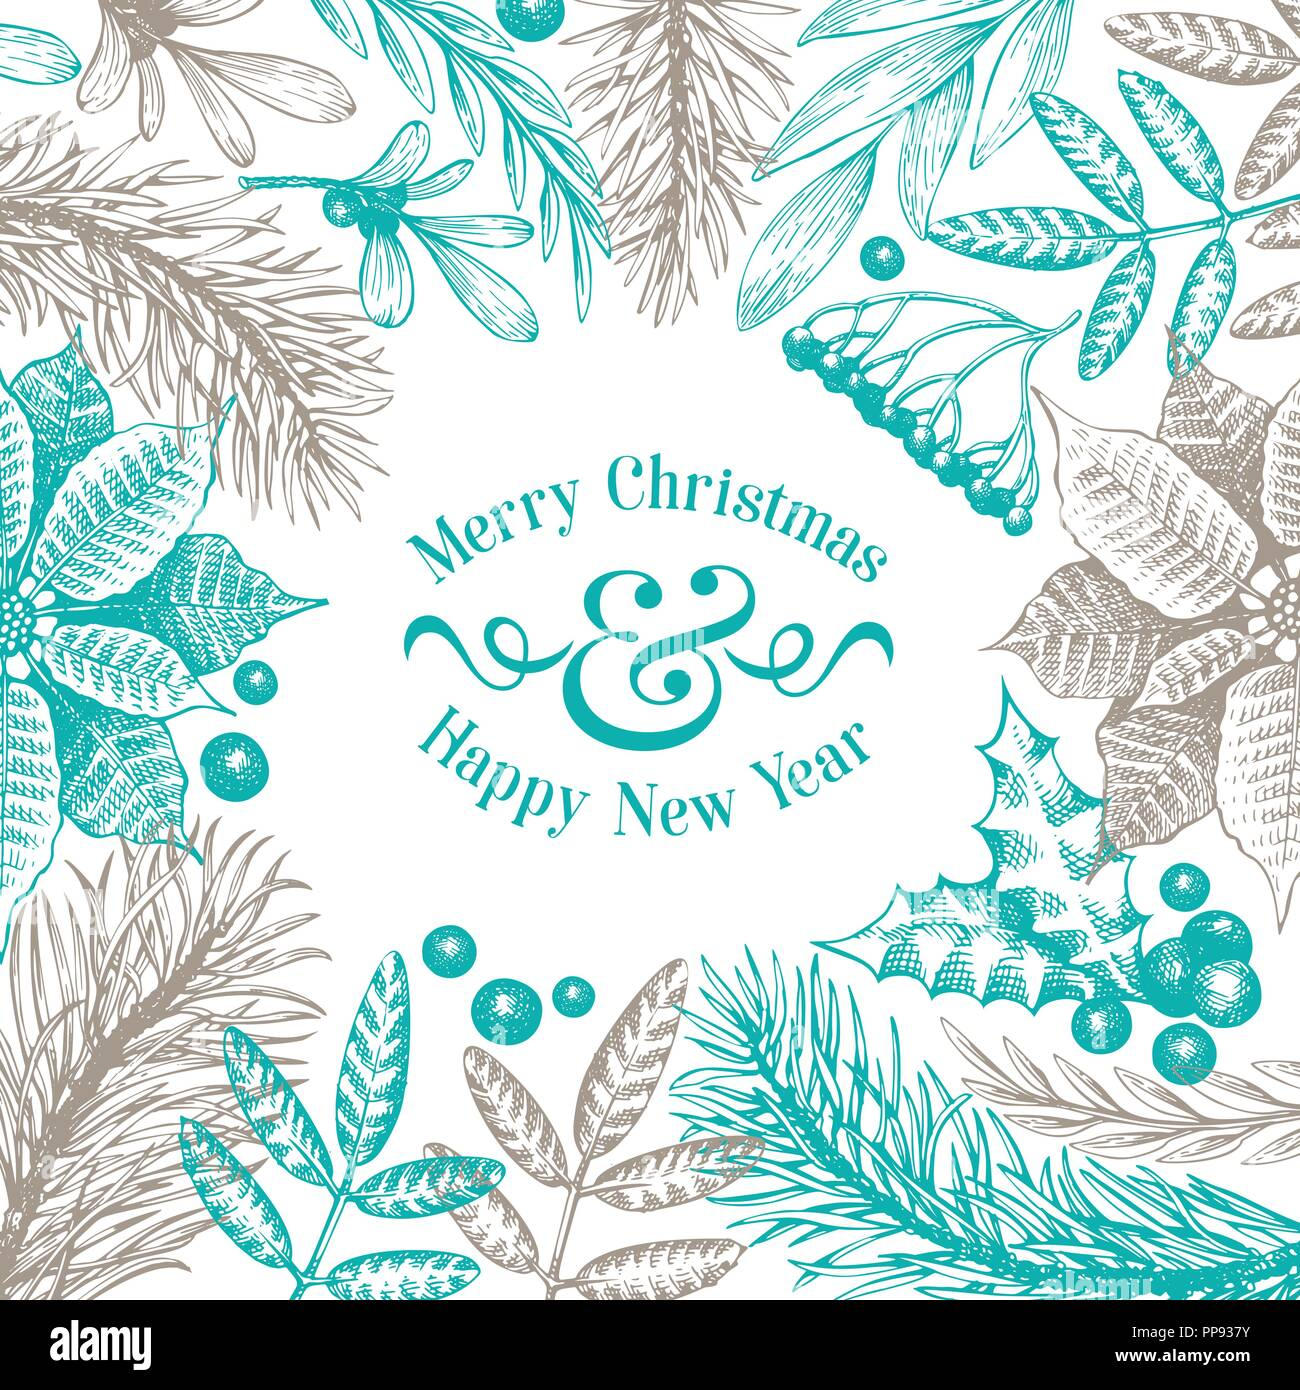 Greeting Christmas card in vintage style. Vector hand drawn illustrations. Frame with coniferous, pine branches, berries, holly, mistletoe. Winter forest background. Merry Christmas template. - Stock Vector